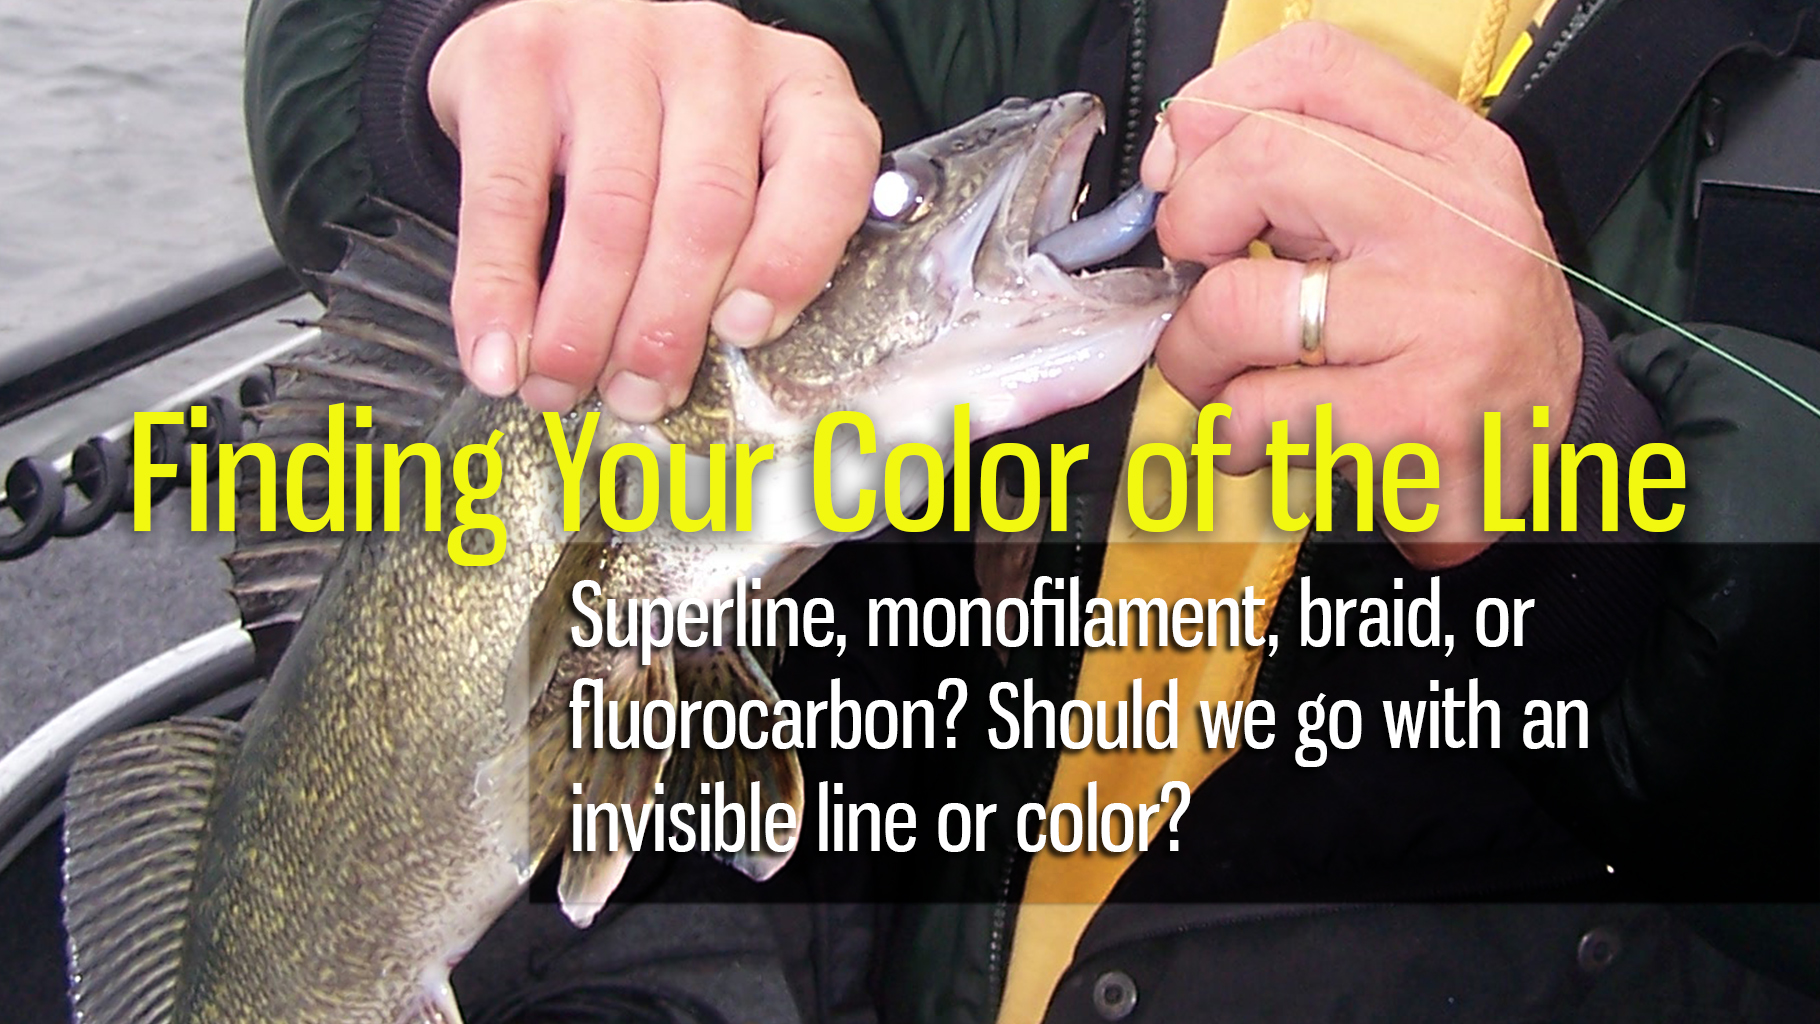 Finding Your Color of the Line